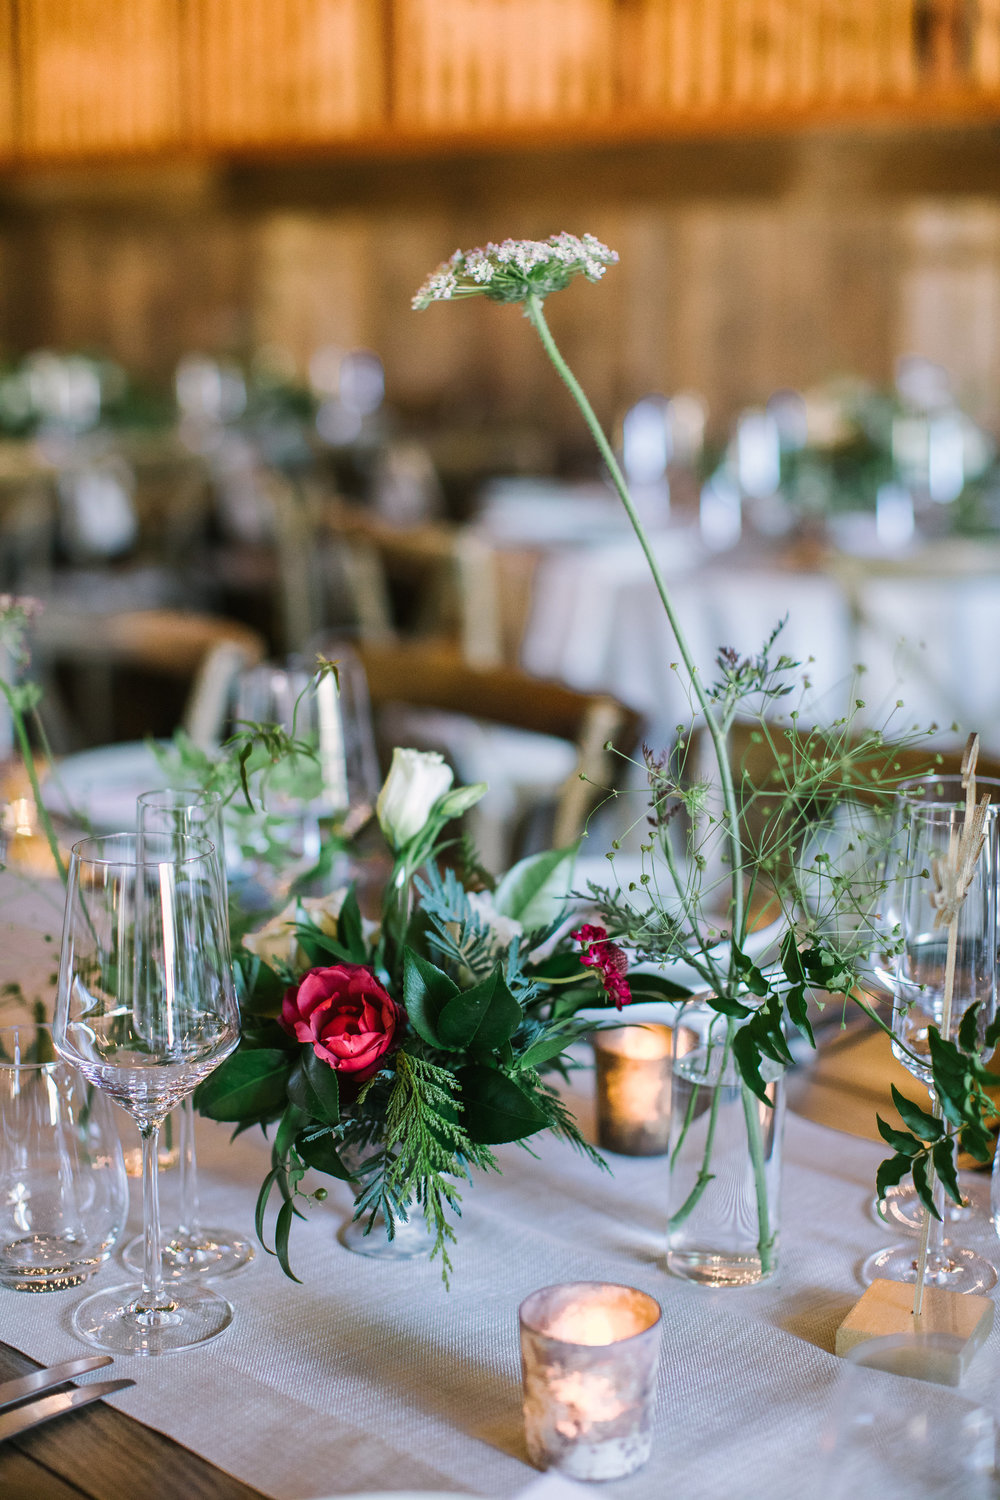 Bud vases with vines and flowers for an elegant barn reception at Olympia's Valley Estate by Venn Floral photographed by The Edges.